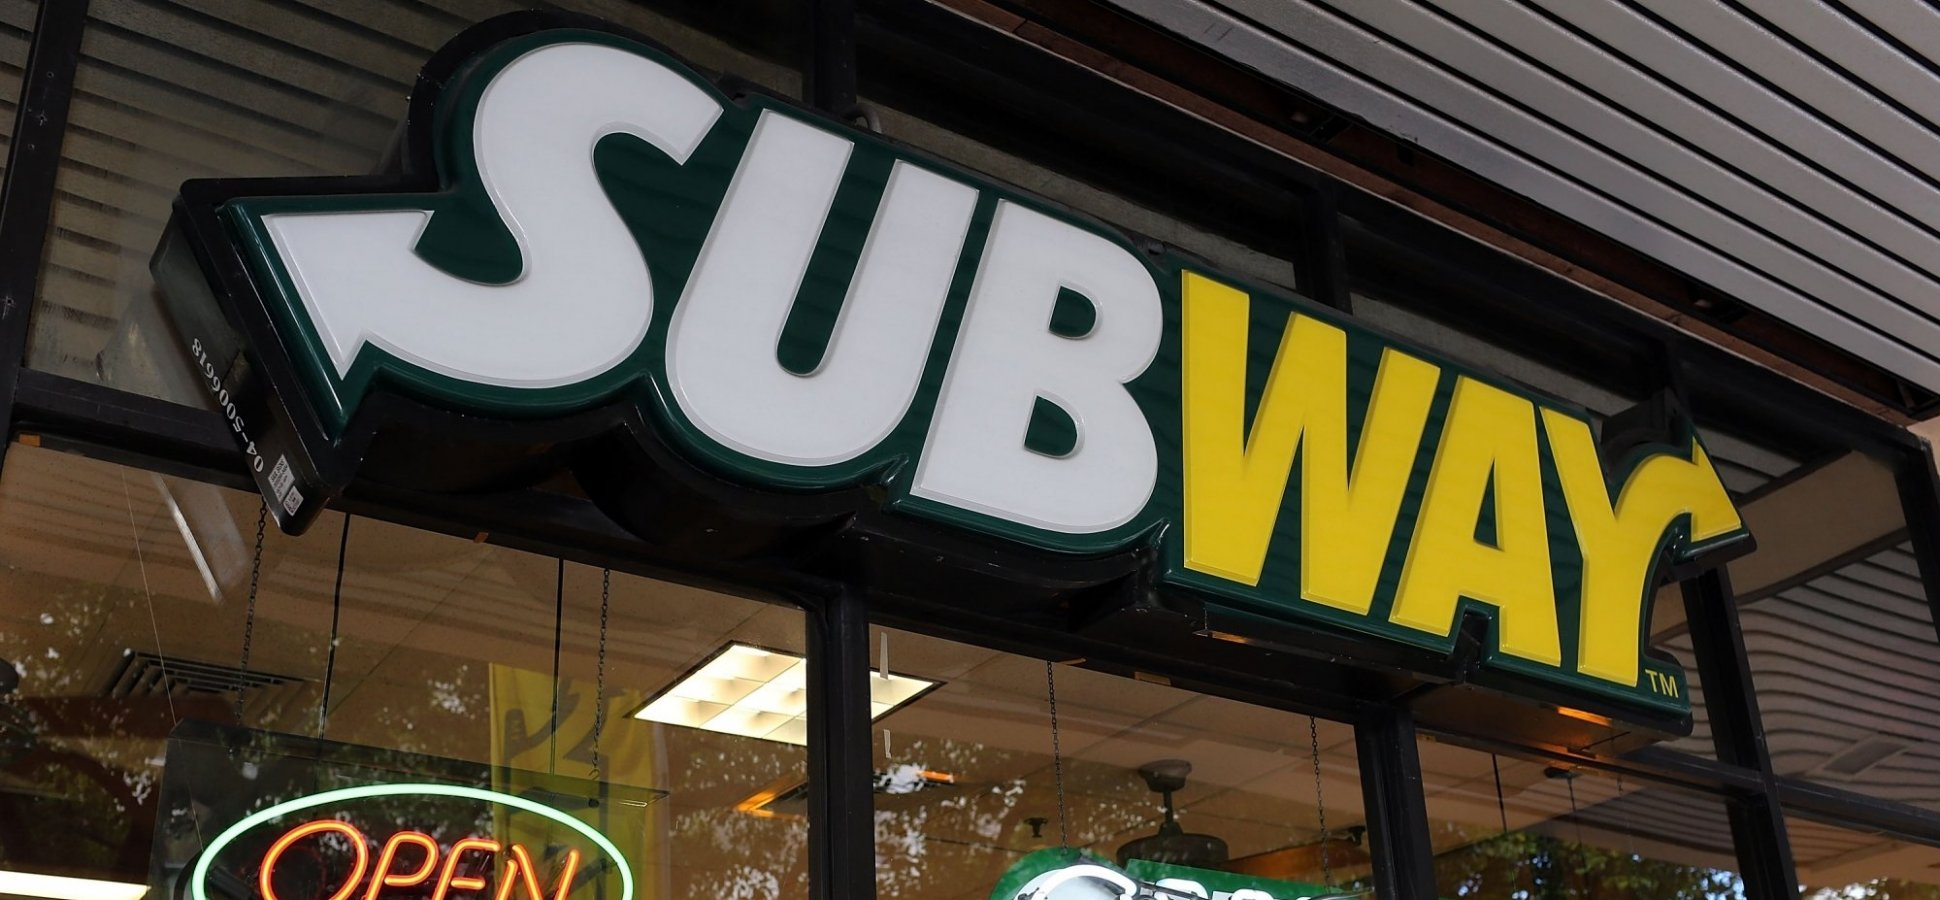 Subway Just Made a Stunning Announcement That Will Change Everything You Think About Subway (and Maybe McDonald's and Burger King, For That Matter)